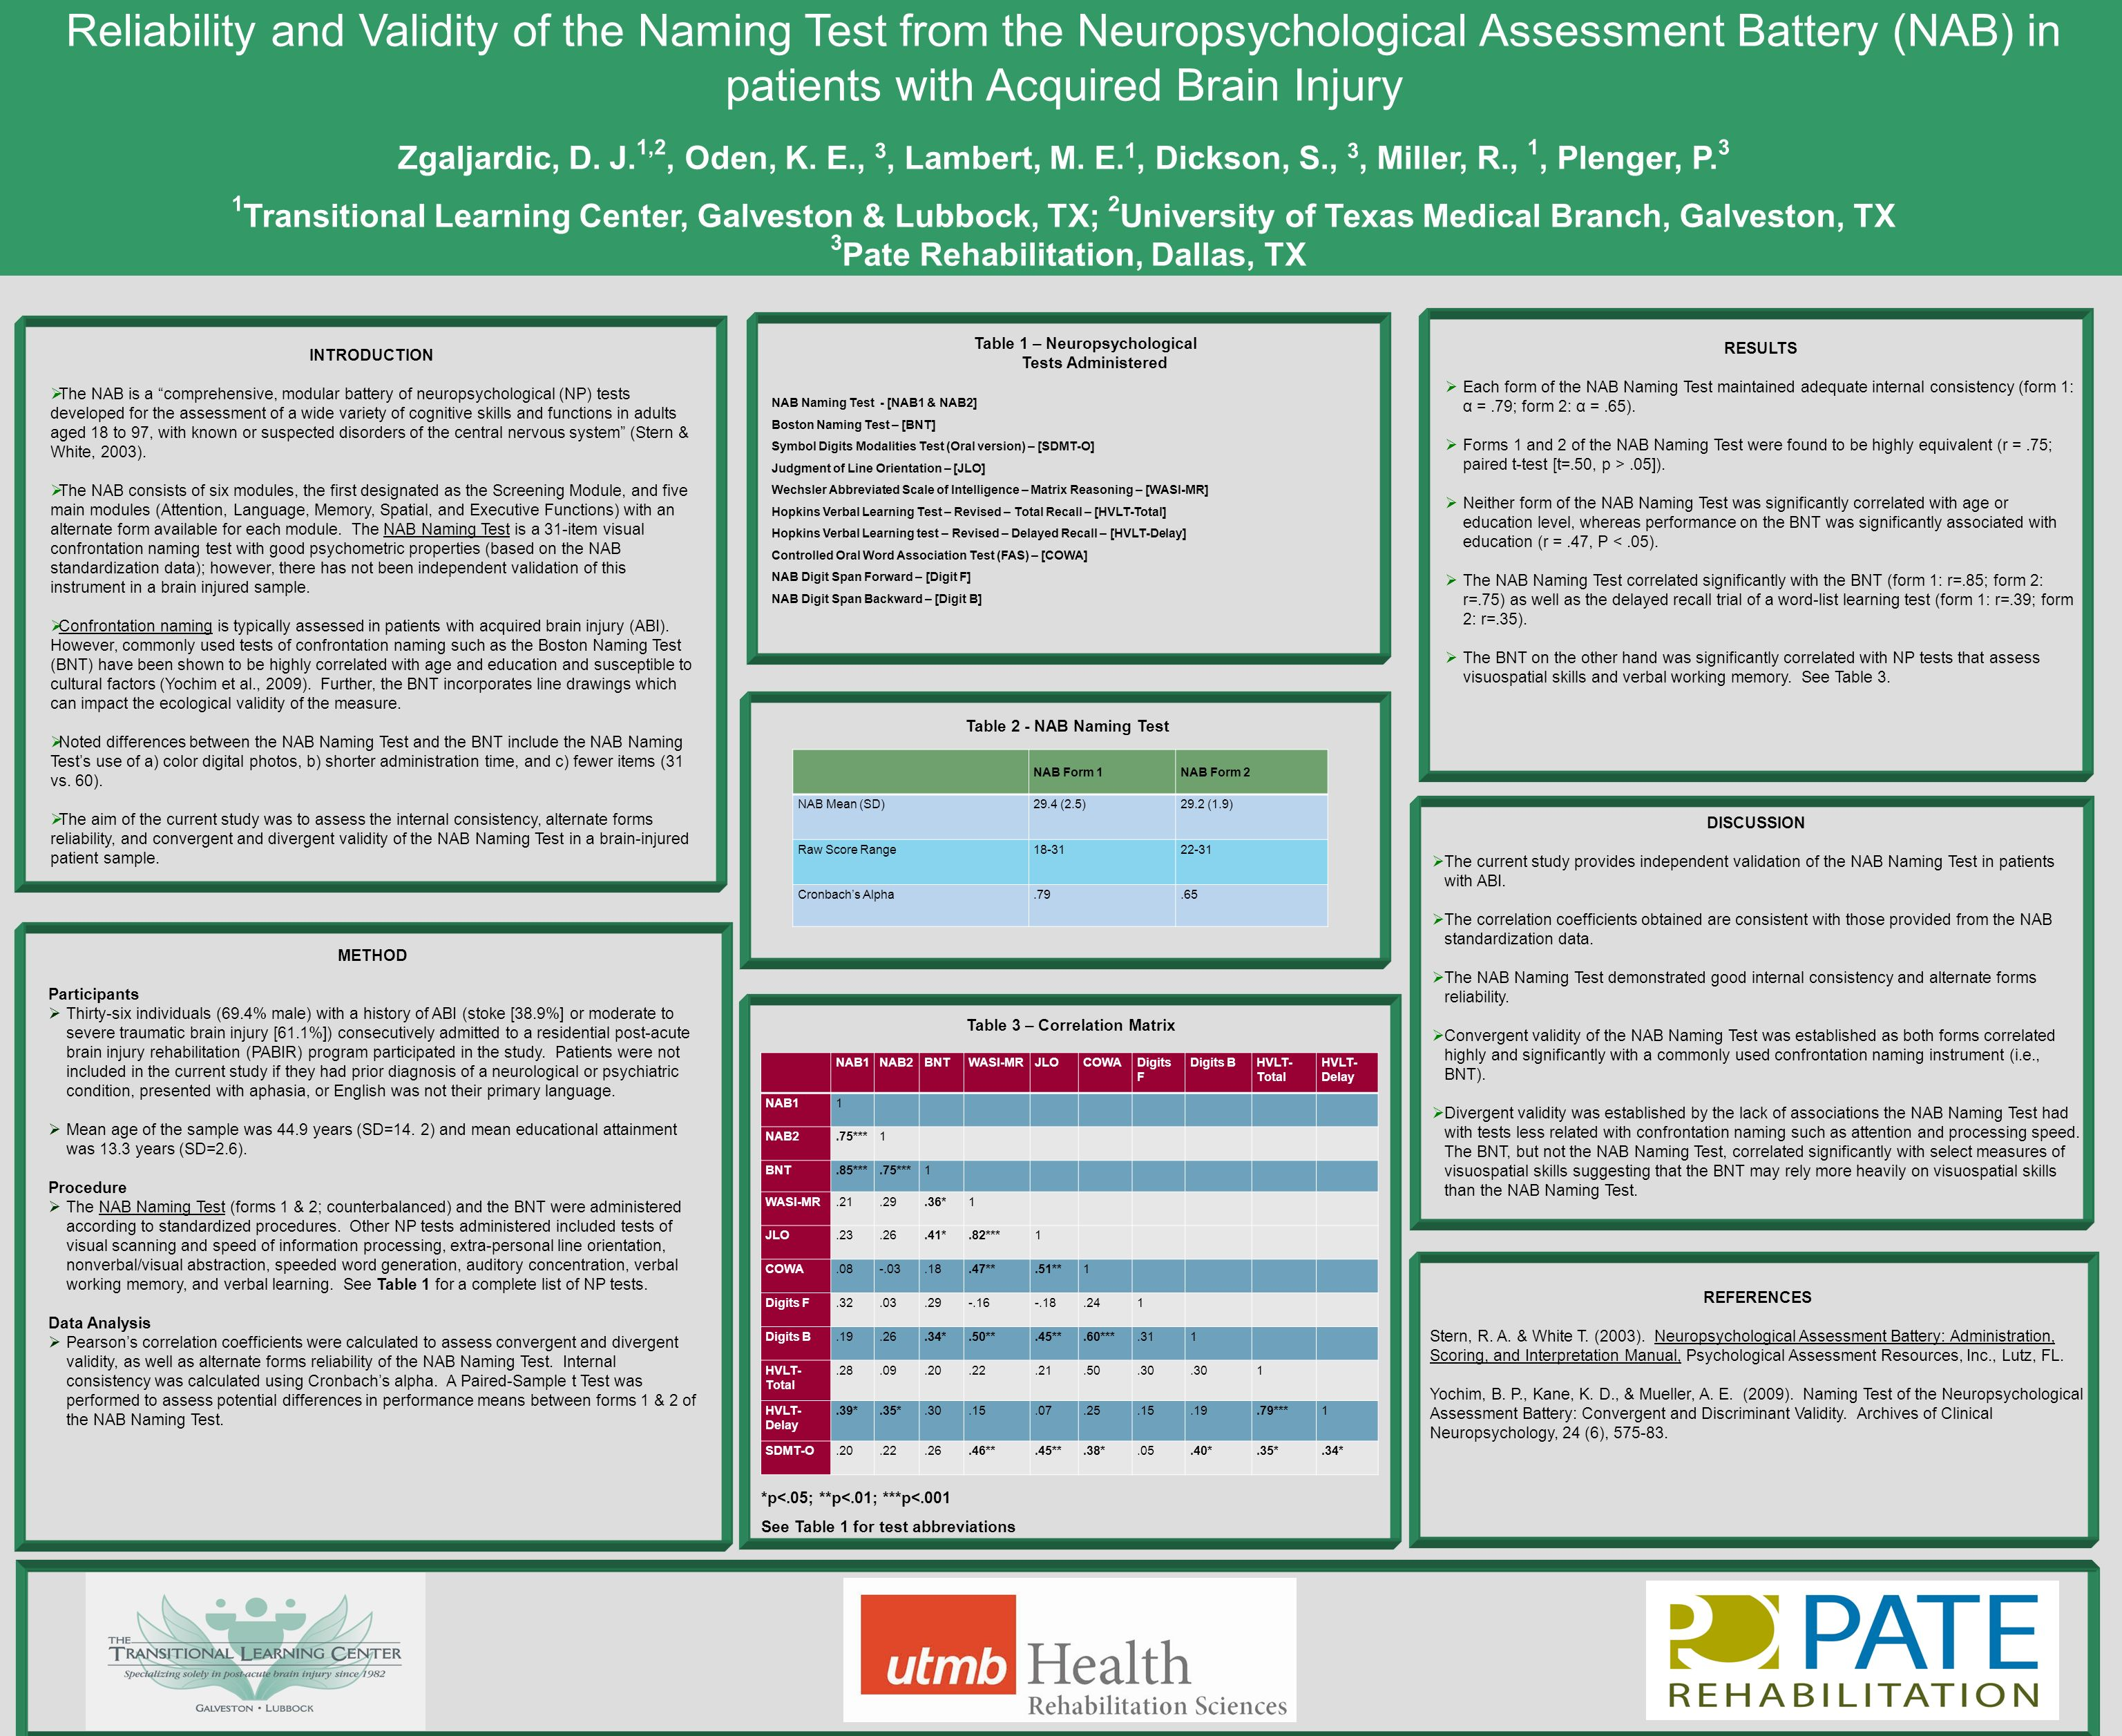 Reliability and Validity of the Naming Test from the Neuropsychological Assessment Battery (NAB) in patients with Acquired Brain Injury